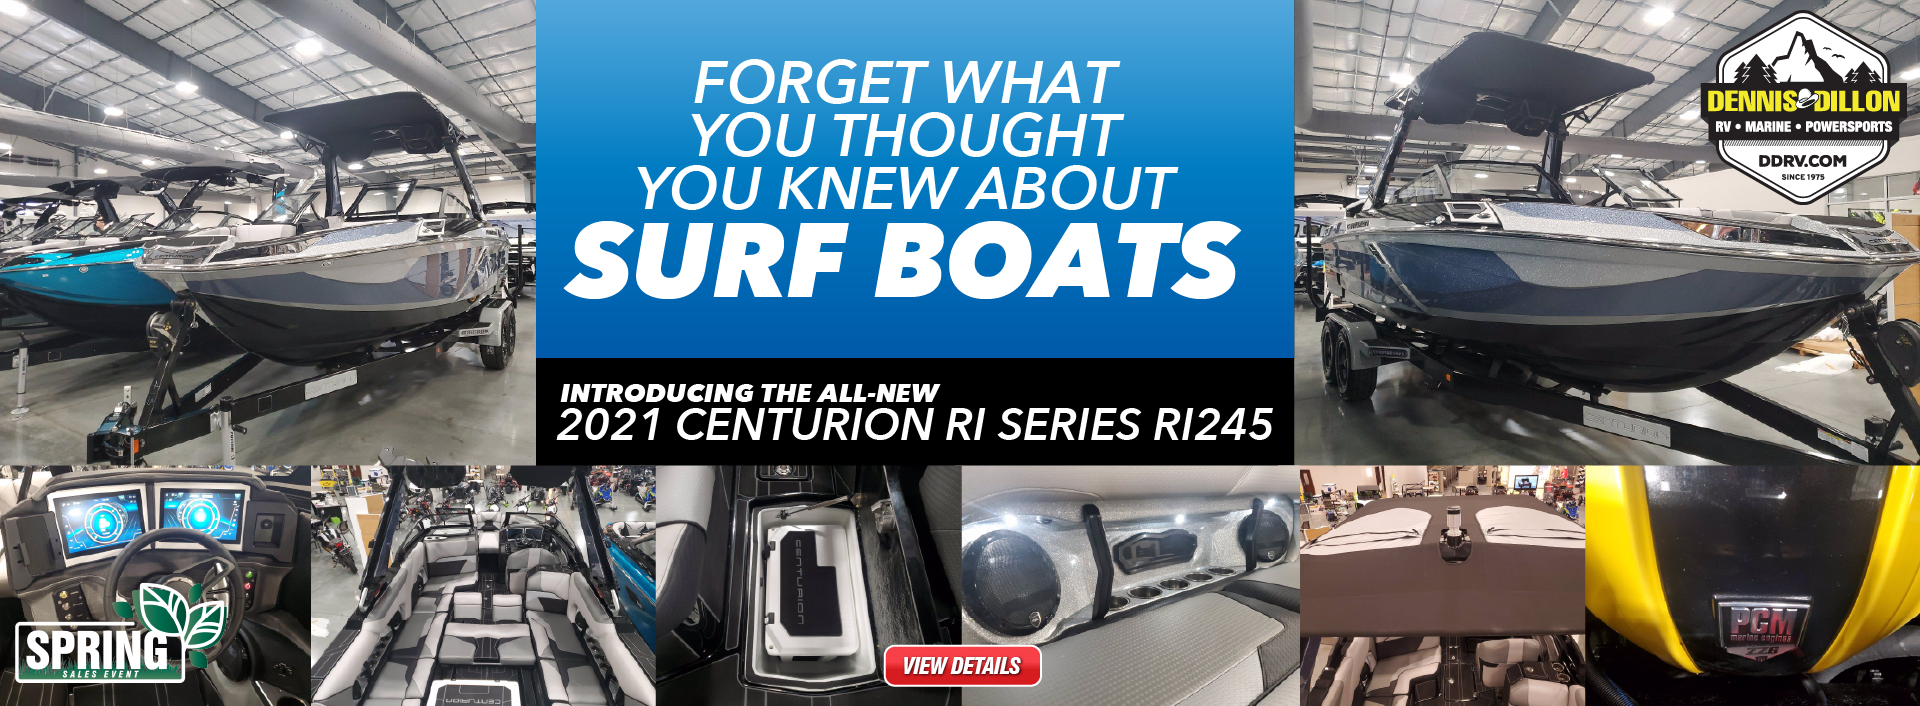 forget what you knew about surf boats